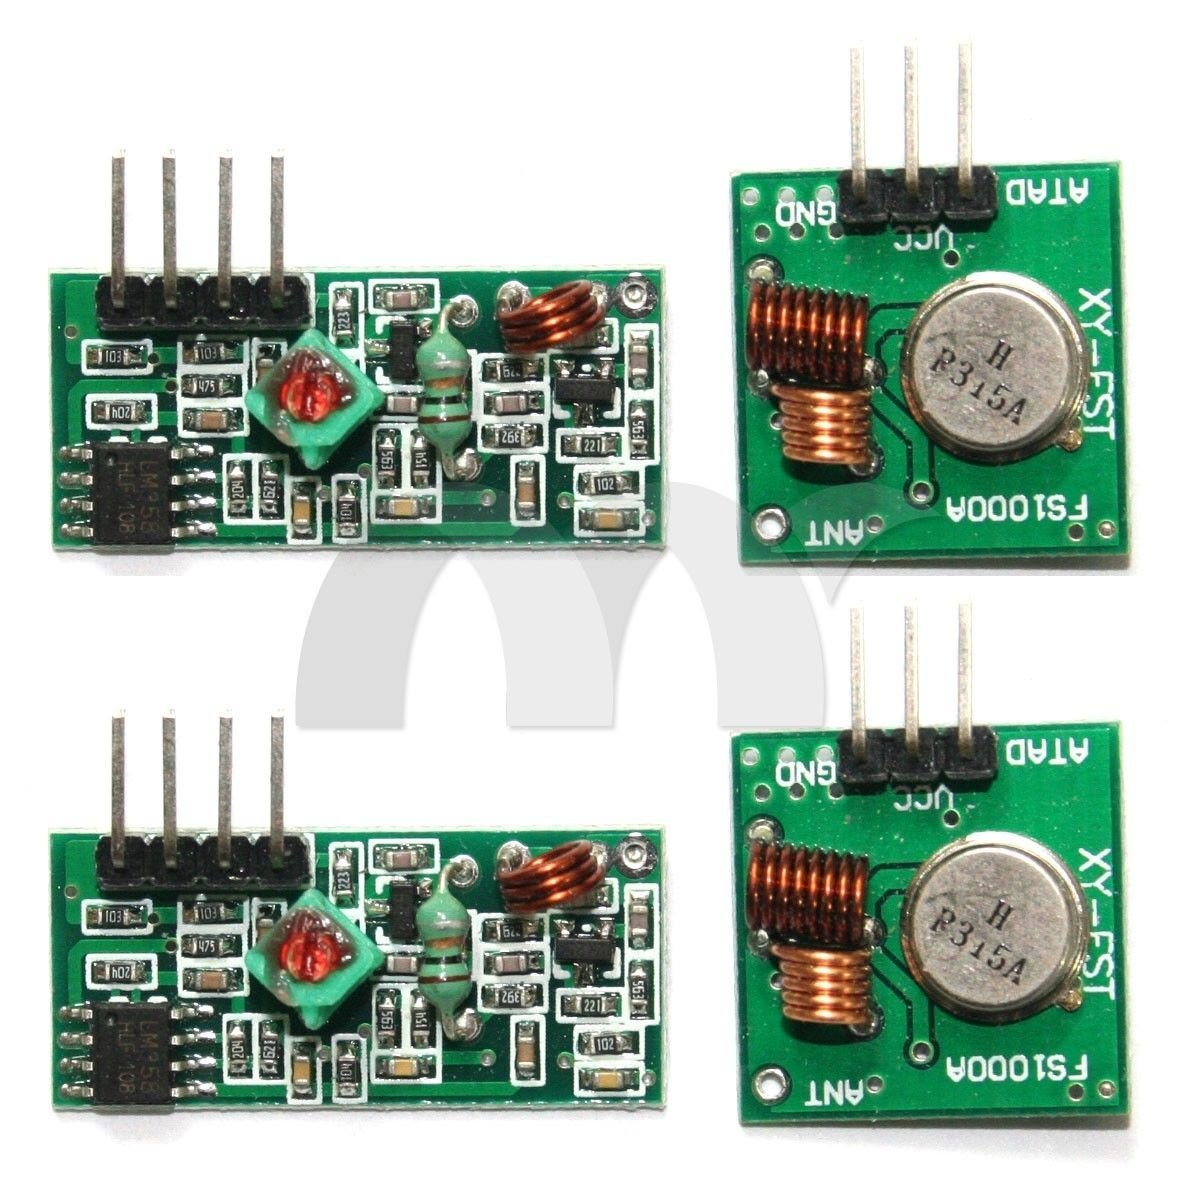 Cheap 315mhz Transmitter Circuit Find Rf Remote Control Board Garage Door 315 433mhz Get Quotations Eztronics Corp 2 Sets Module And Receiver Link Kit For Arduino Arm